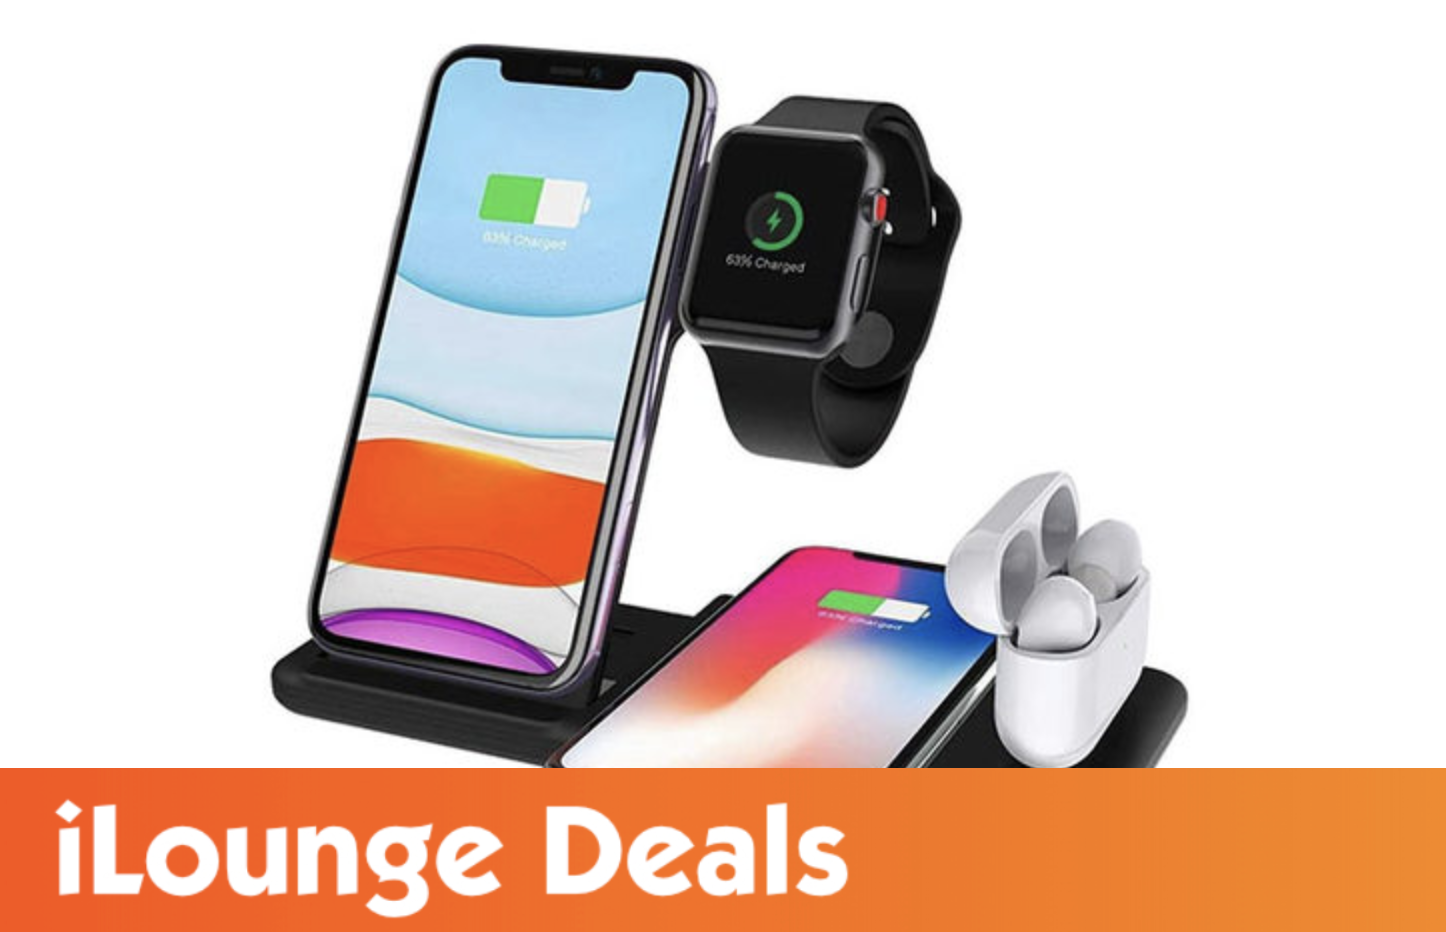 4-in-1 Wireless Charging Station is 33% off